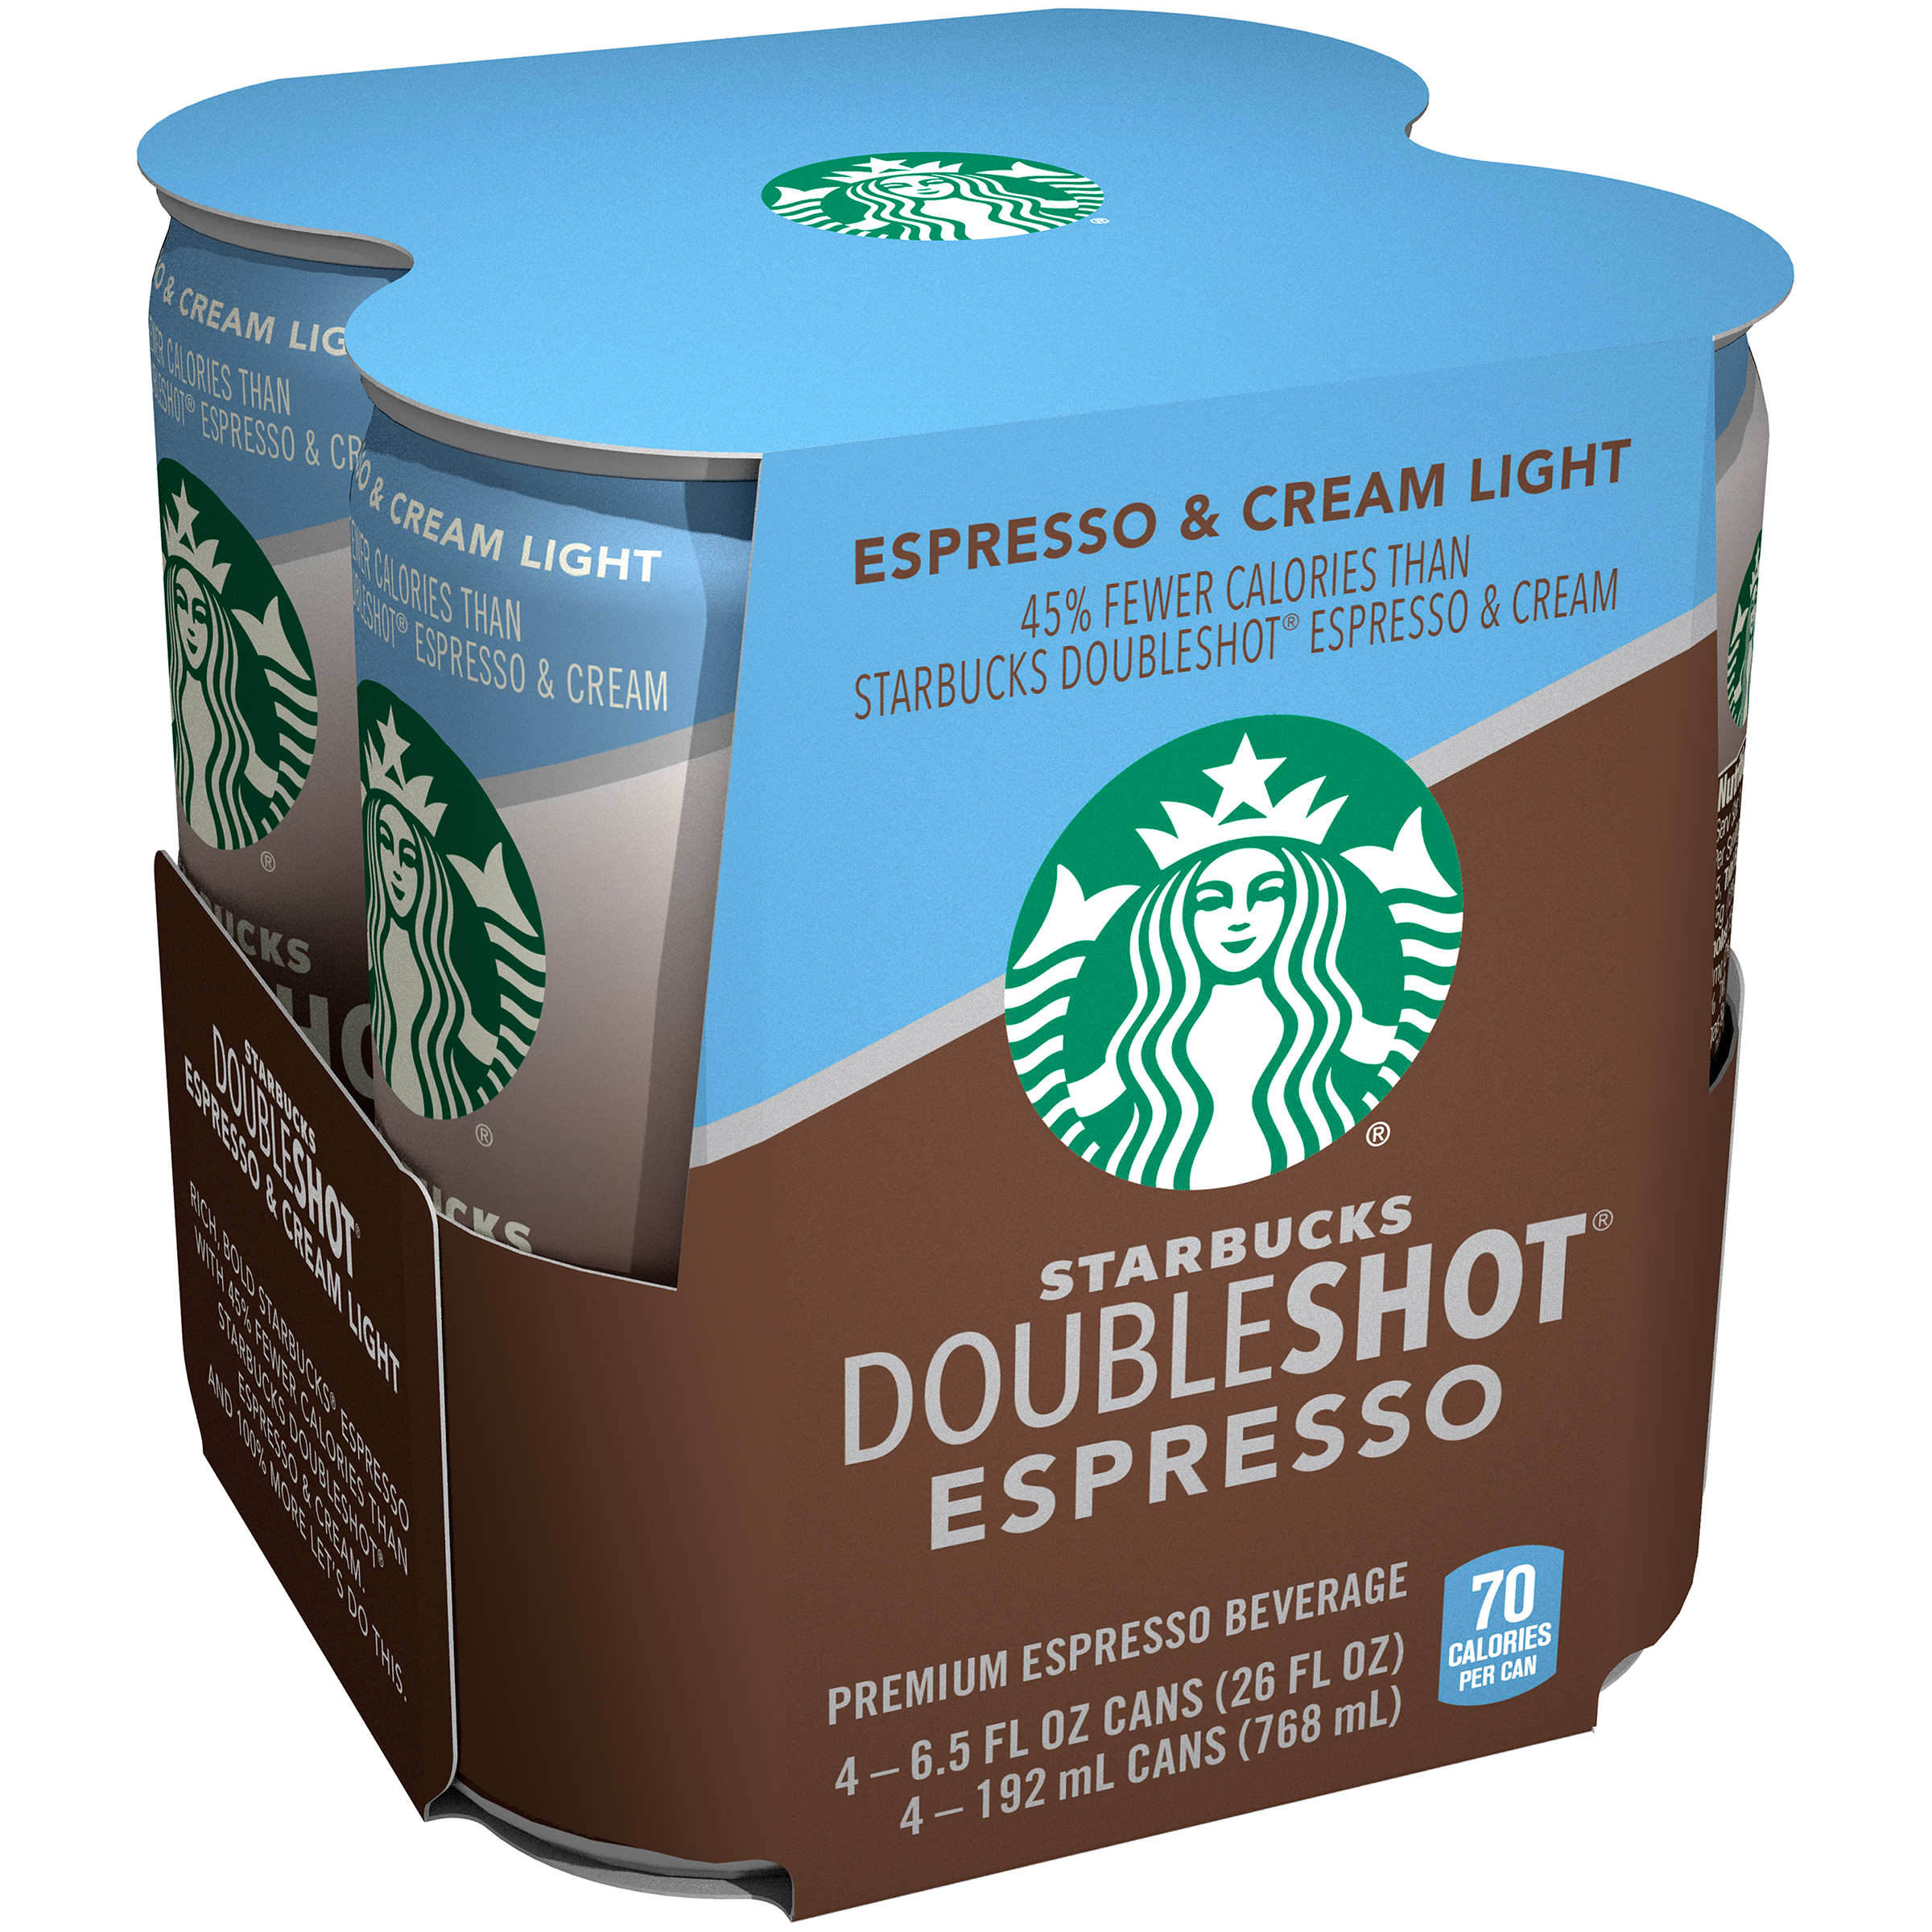 Starbucks Doubleshot�� Espresso & Cream Light Coffee Drink 4-6.5 fl. oz. Can